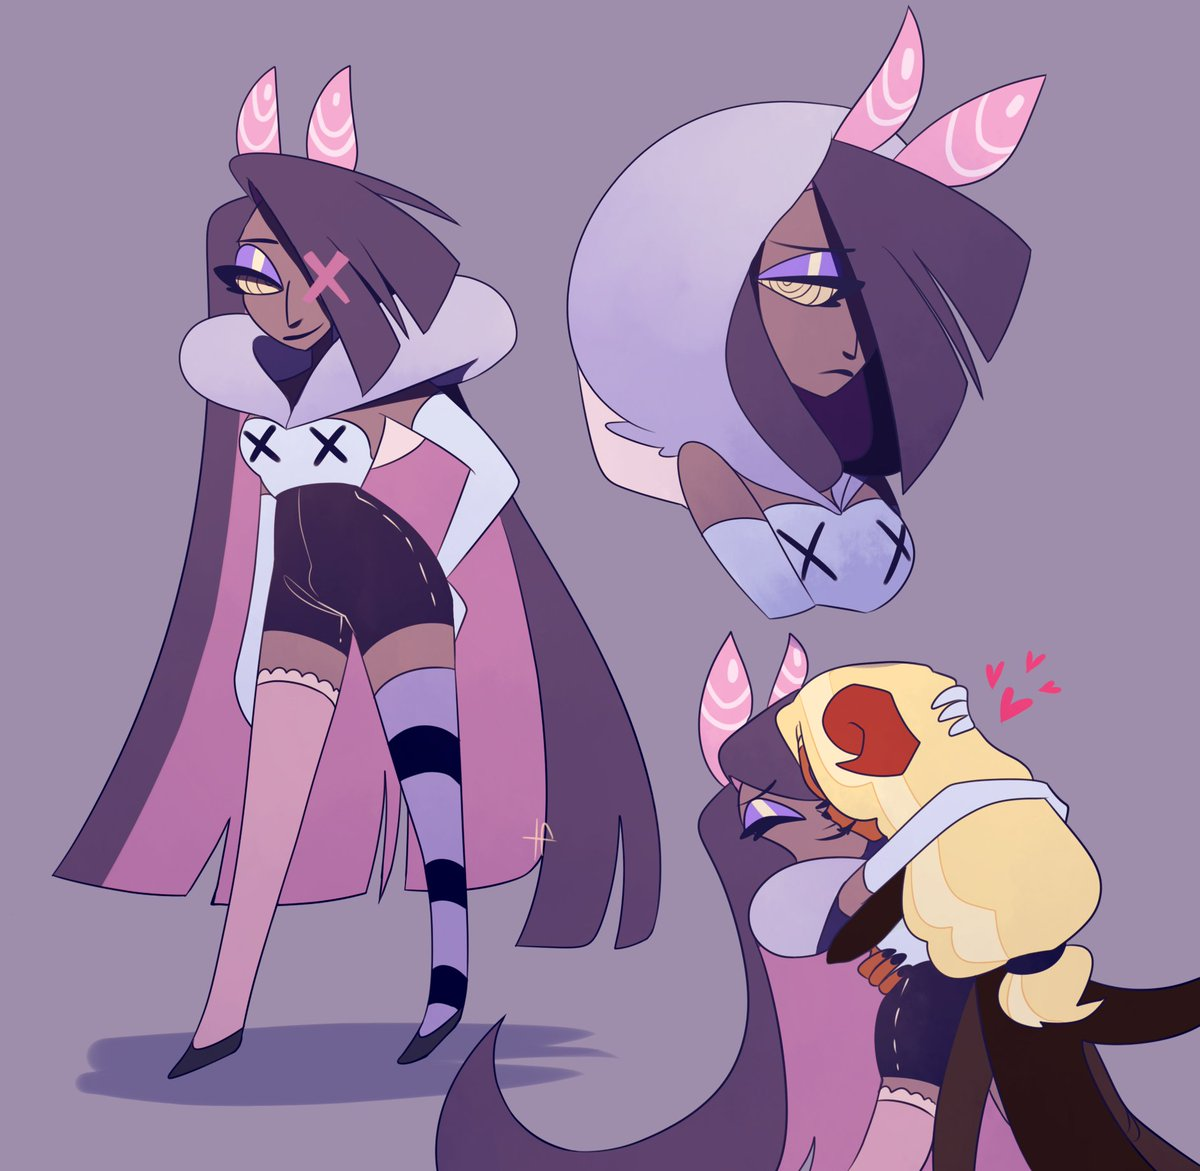 Leetle Lie On Twitter I Wish There We Re More Charlie With Vaggie Content I Really Dislike Charlastor Hazbinhotel She is the manager of the happy hotel. leetle lie on twitter i wish there we